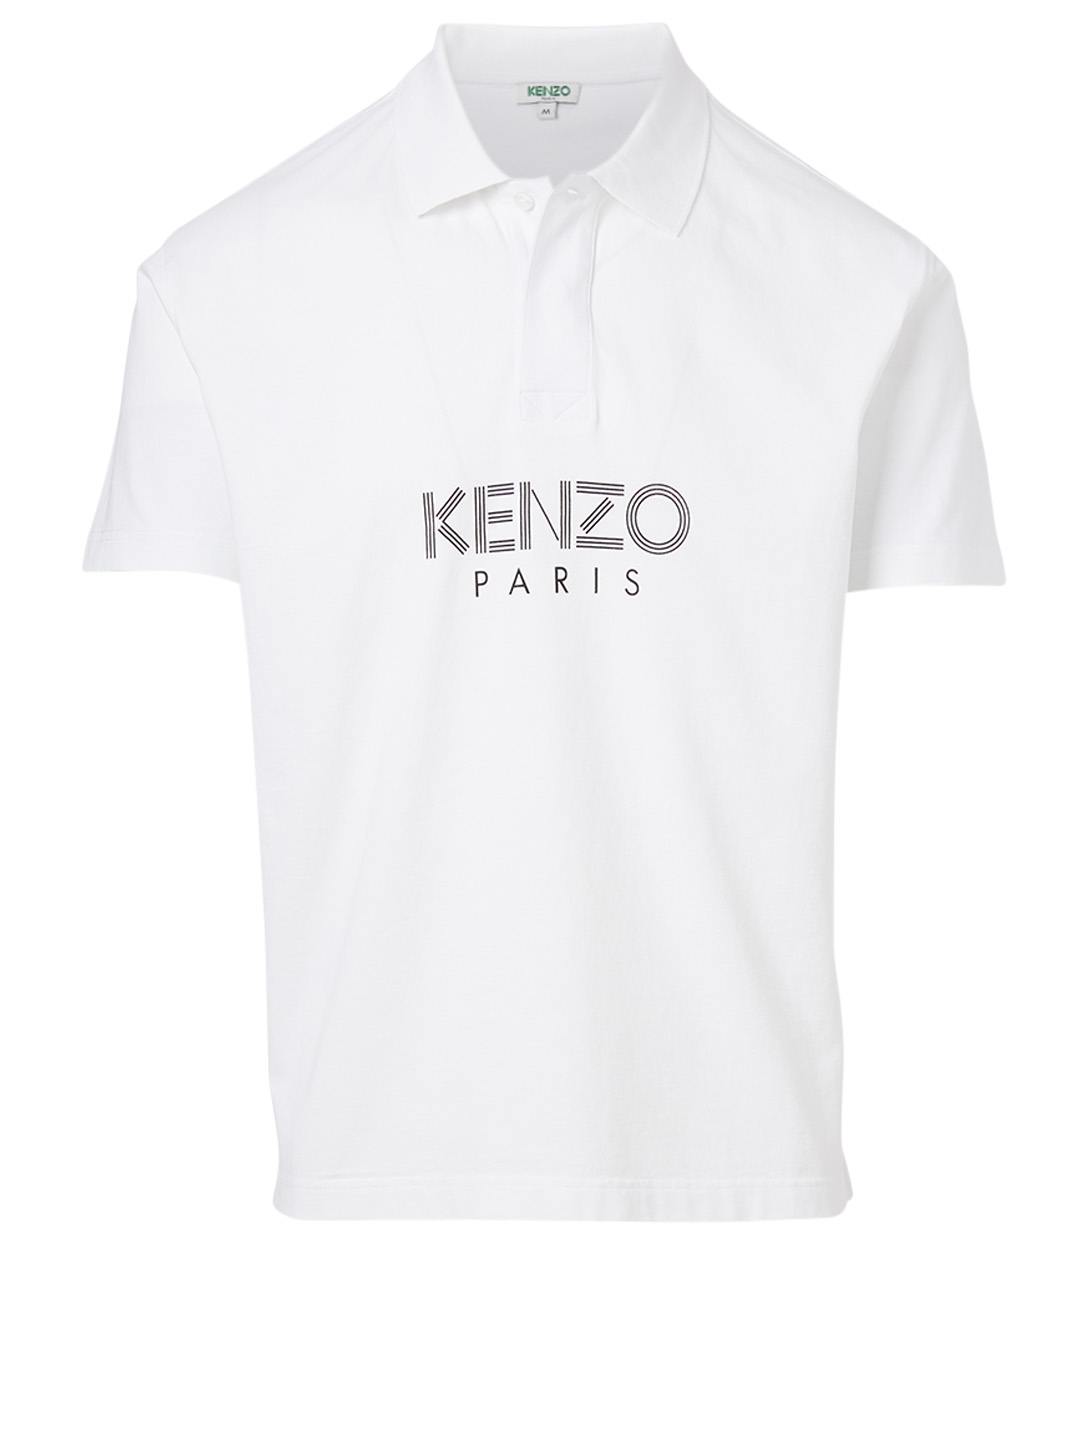 KENZO Cotton Logo Polo Shirt Men's White